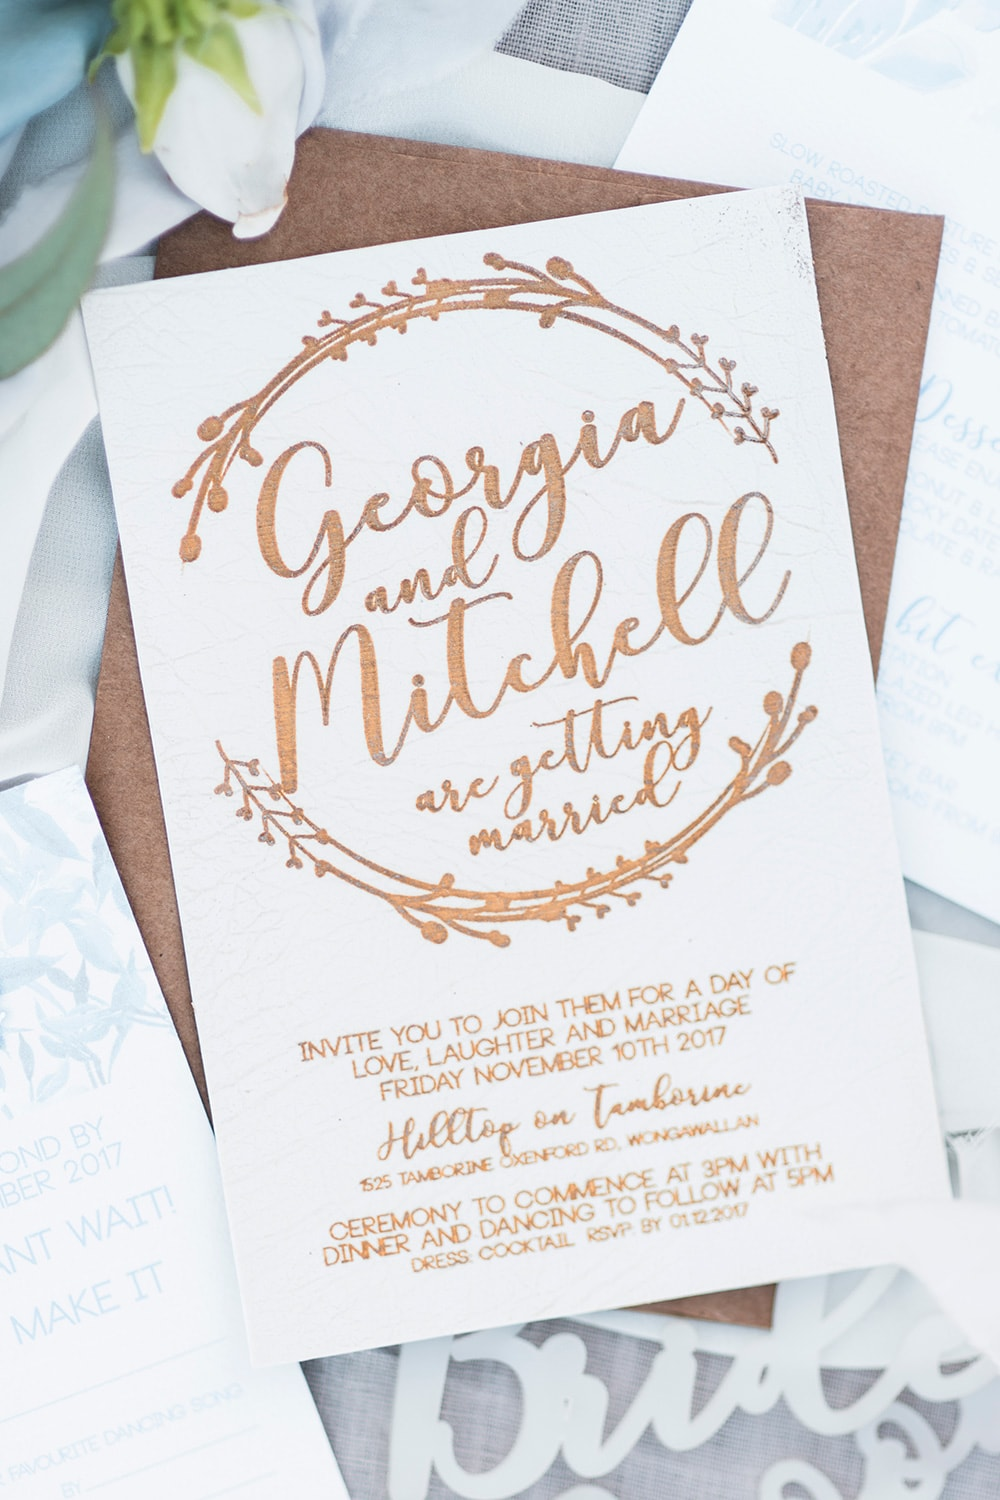 The Rustic at Heart | Event Stationery & Signage Australia Wide